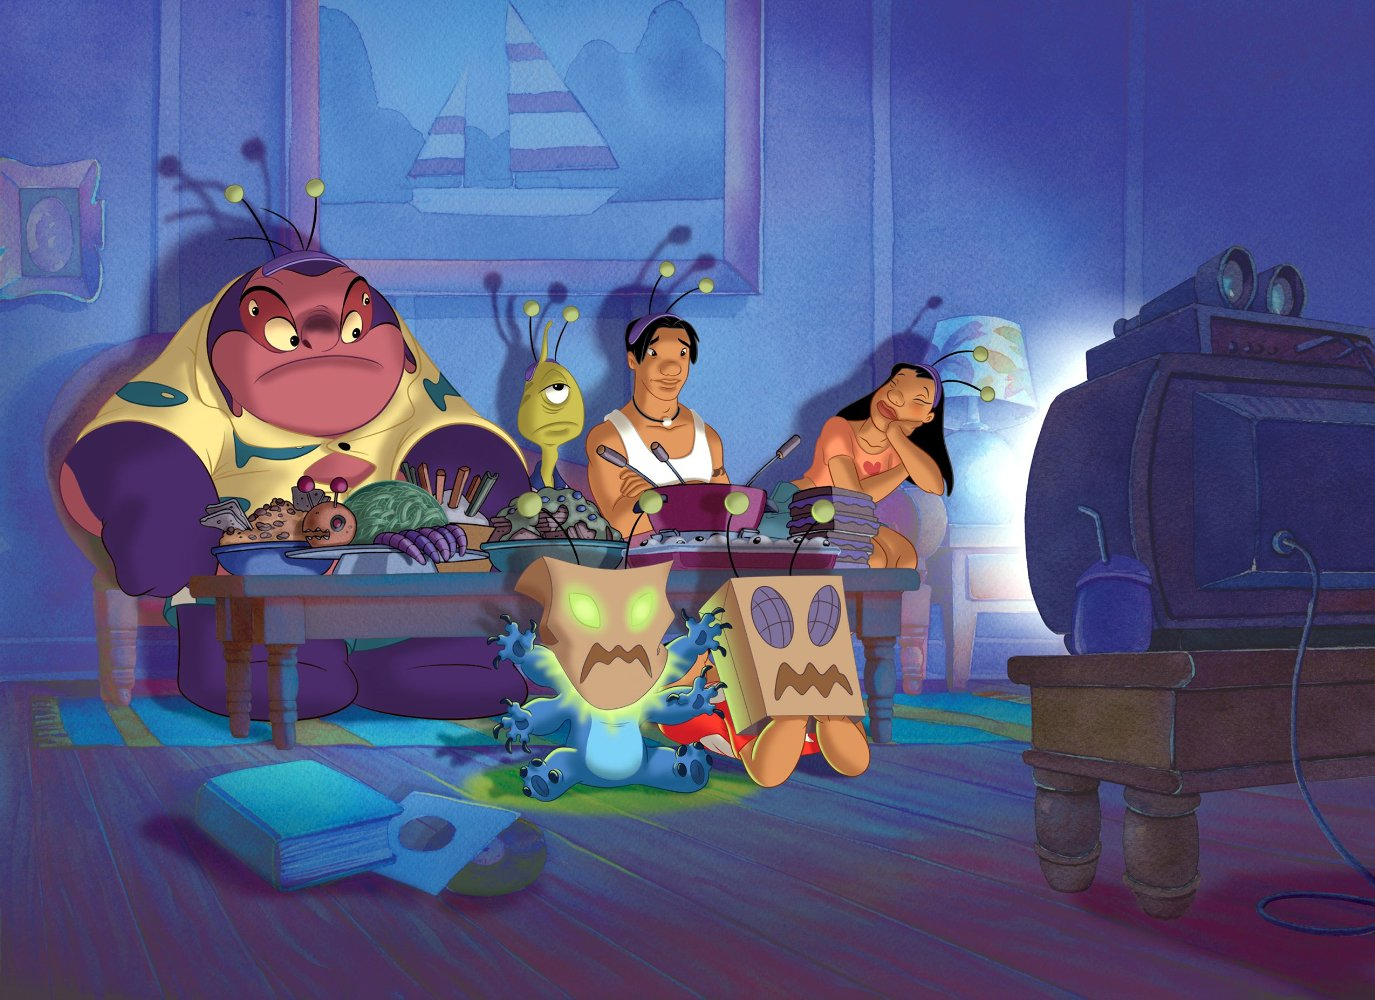 Lilo And Stitch 2 Stitch Has a Glitch